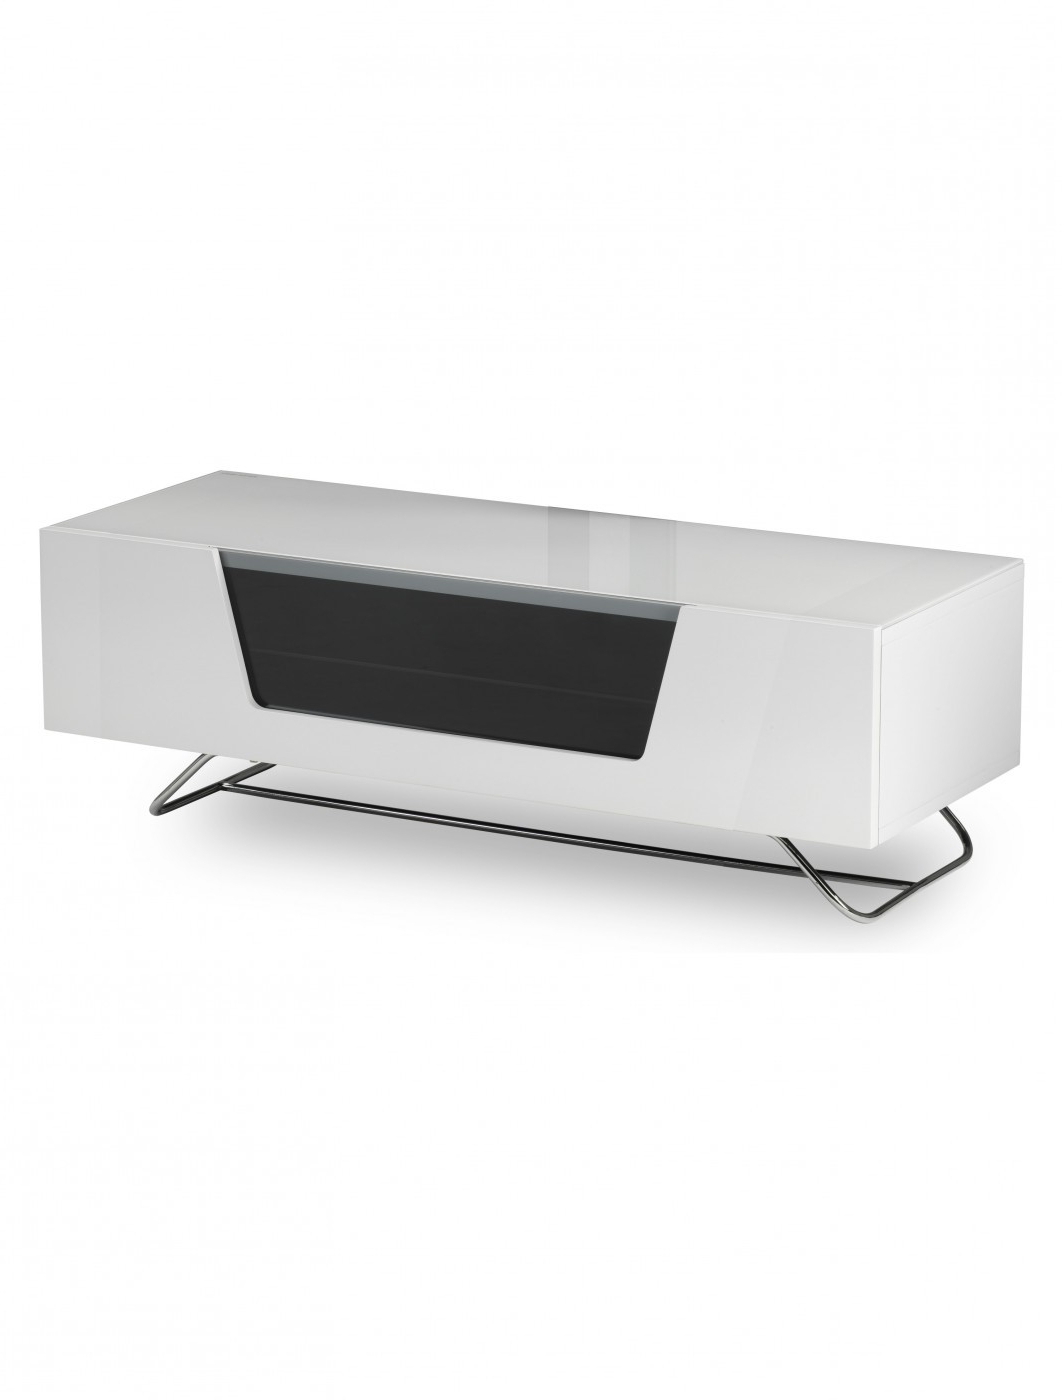 Alphason Chromium Tv Stand Cro2 1200cb Wht   121 Tv Mounts Within Chromium Tv Stands (View 9 of 20)